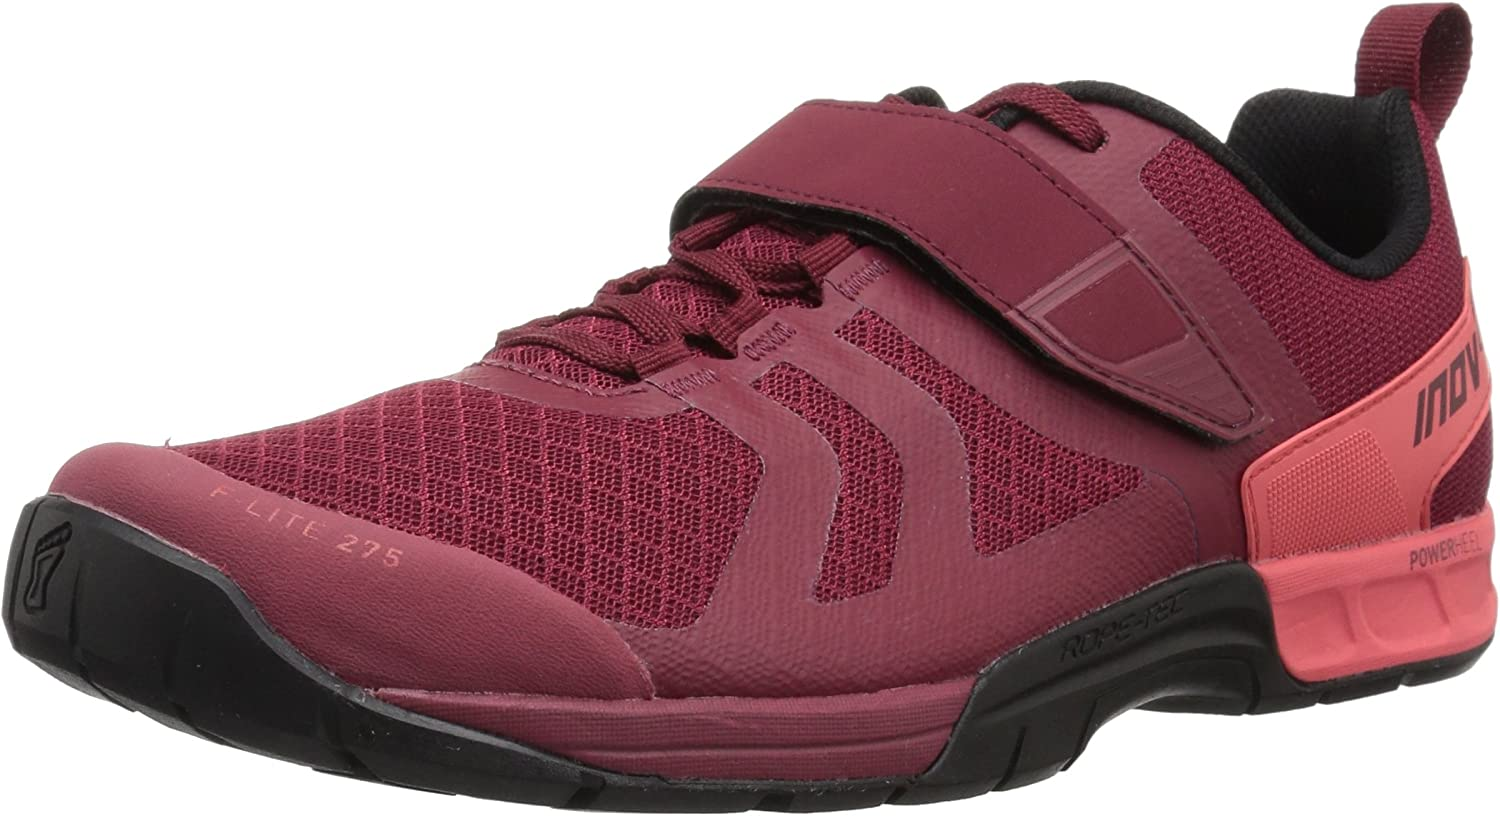 Inov-8 Womens F-Lite 275 Fabric Low Top Lace up Running Sneaker